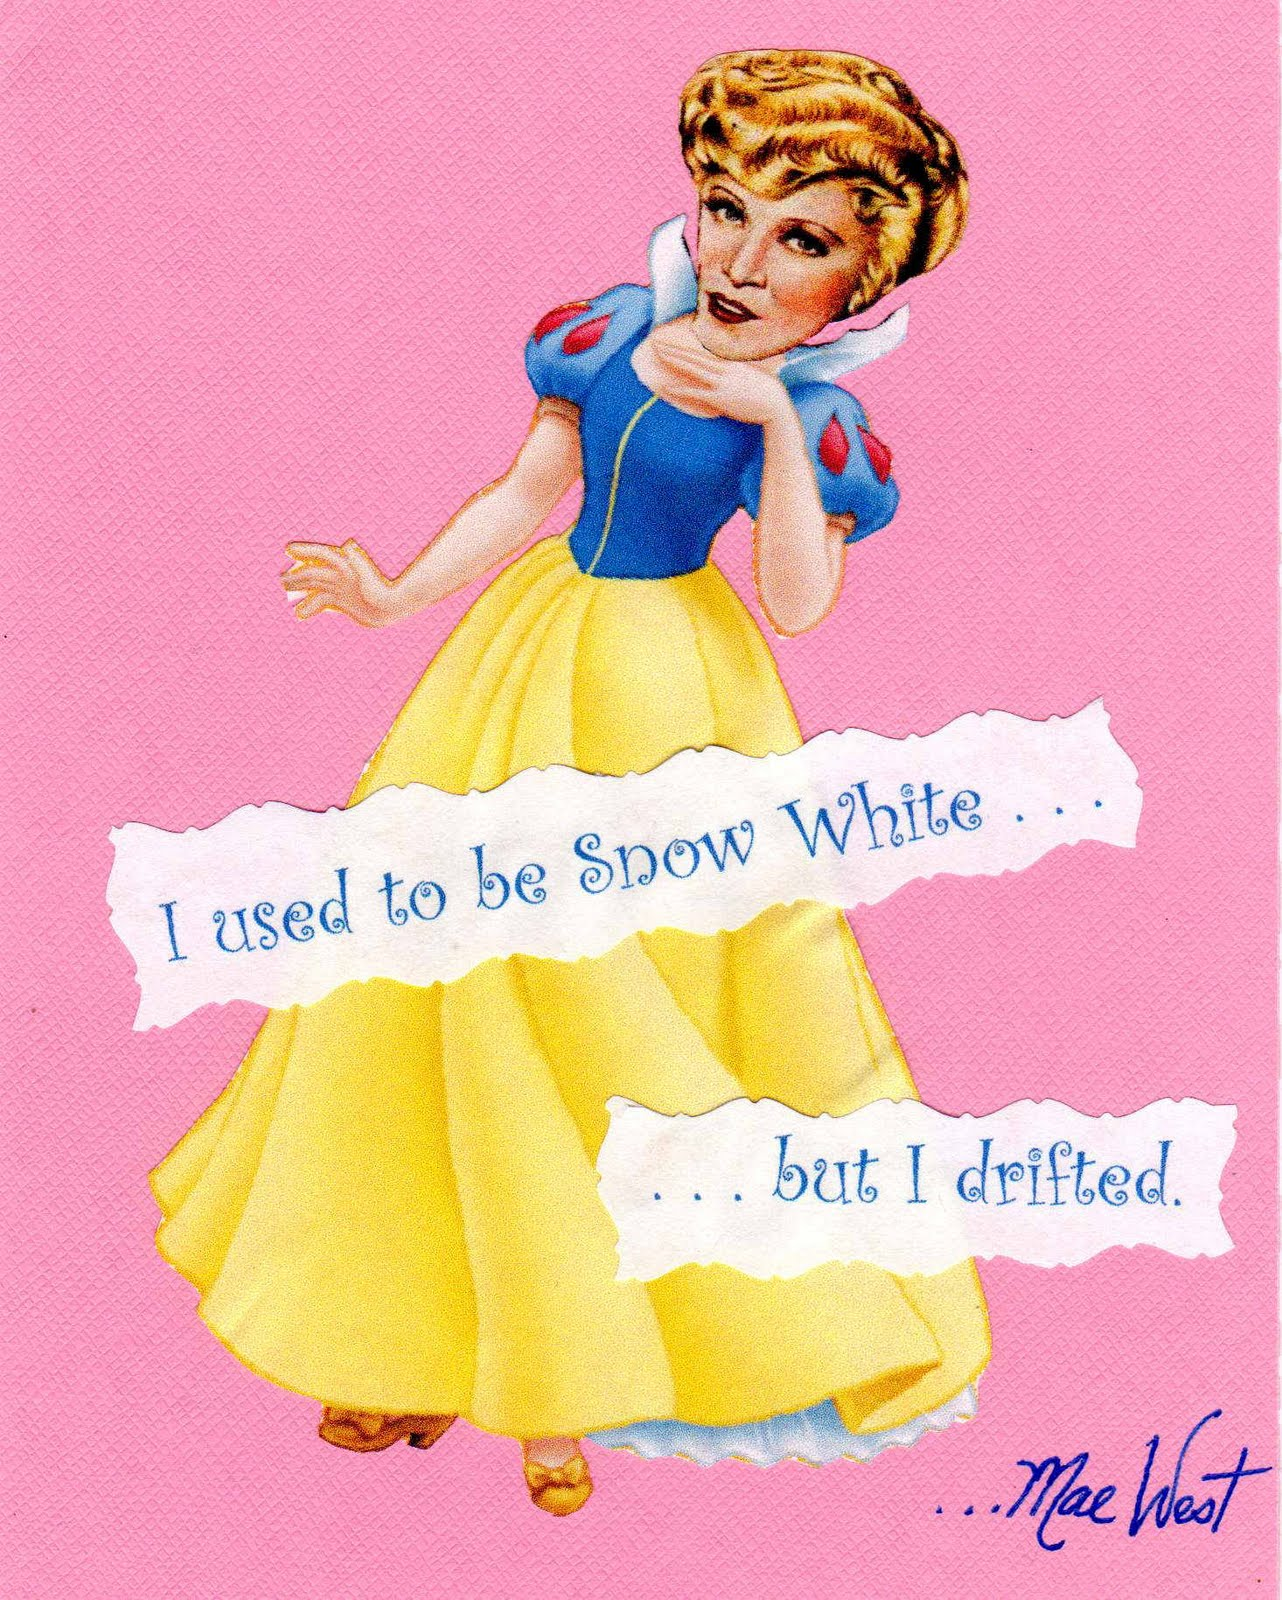 I used  to be Snow White then I drifted